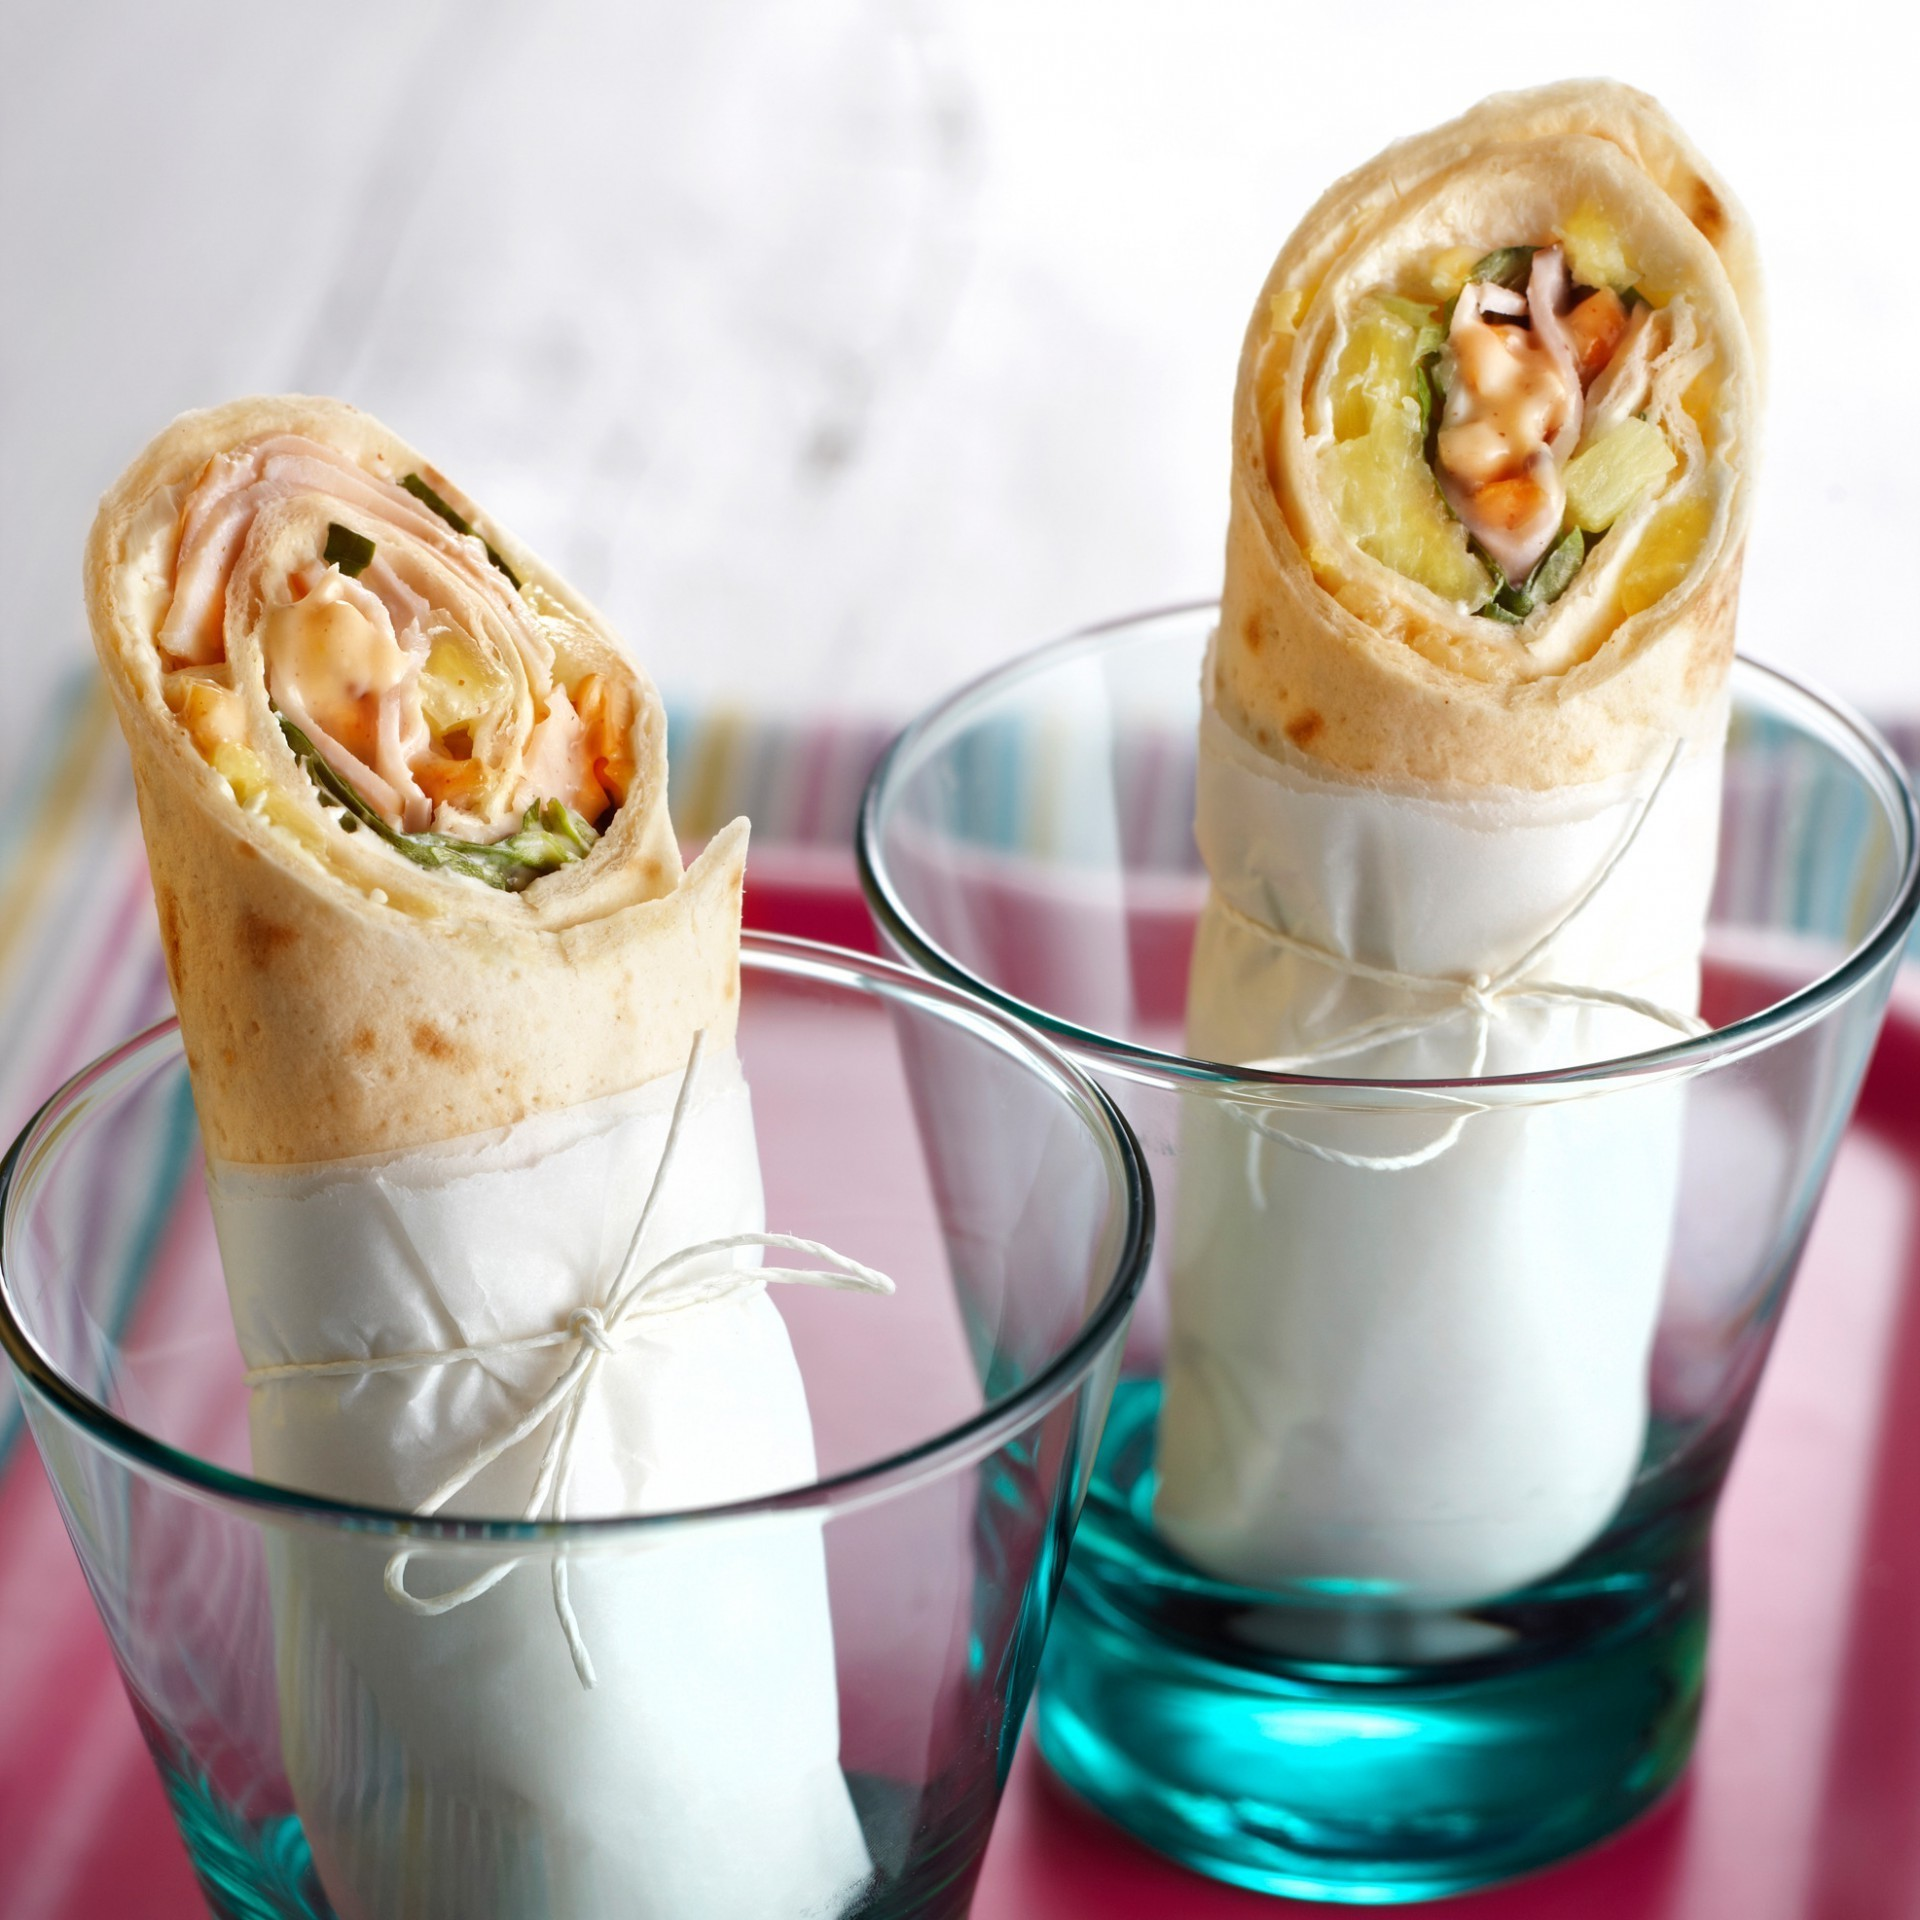 Chicken wrap with honey-nut dressing